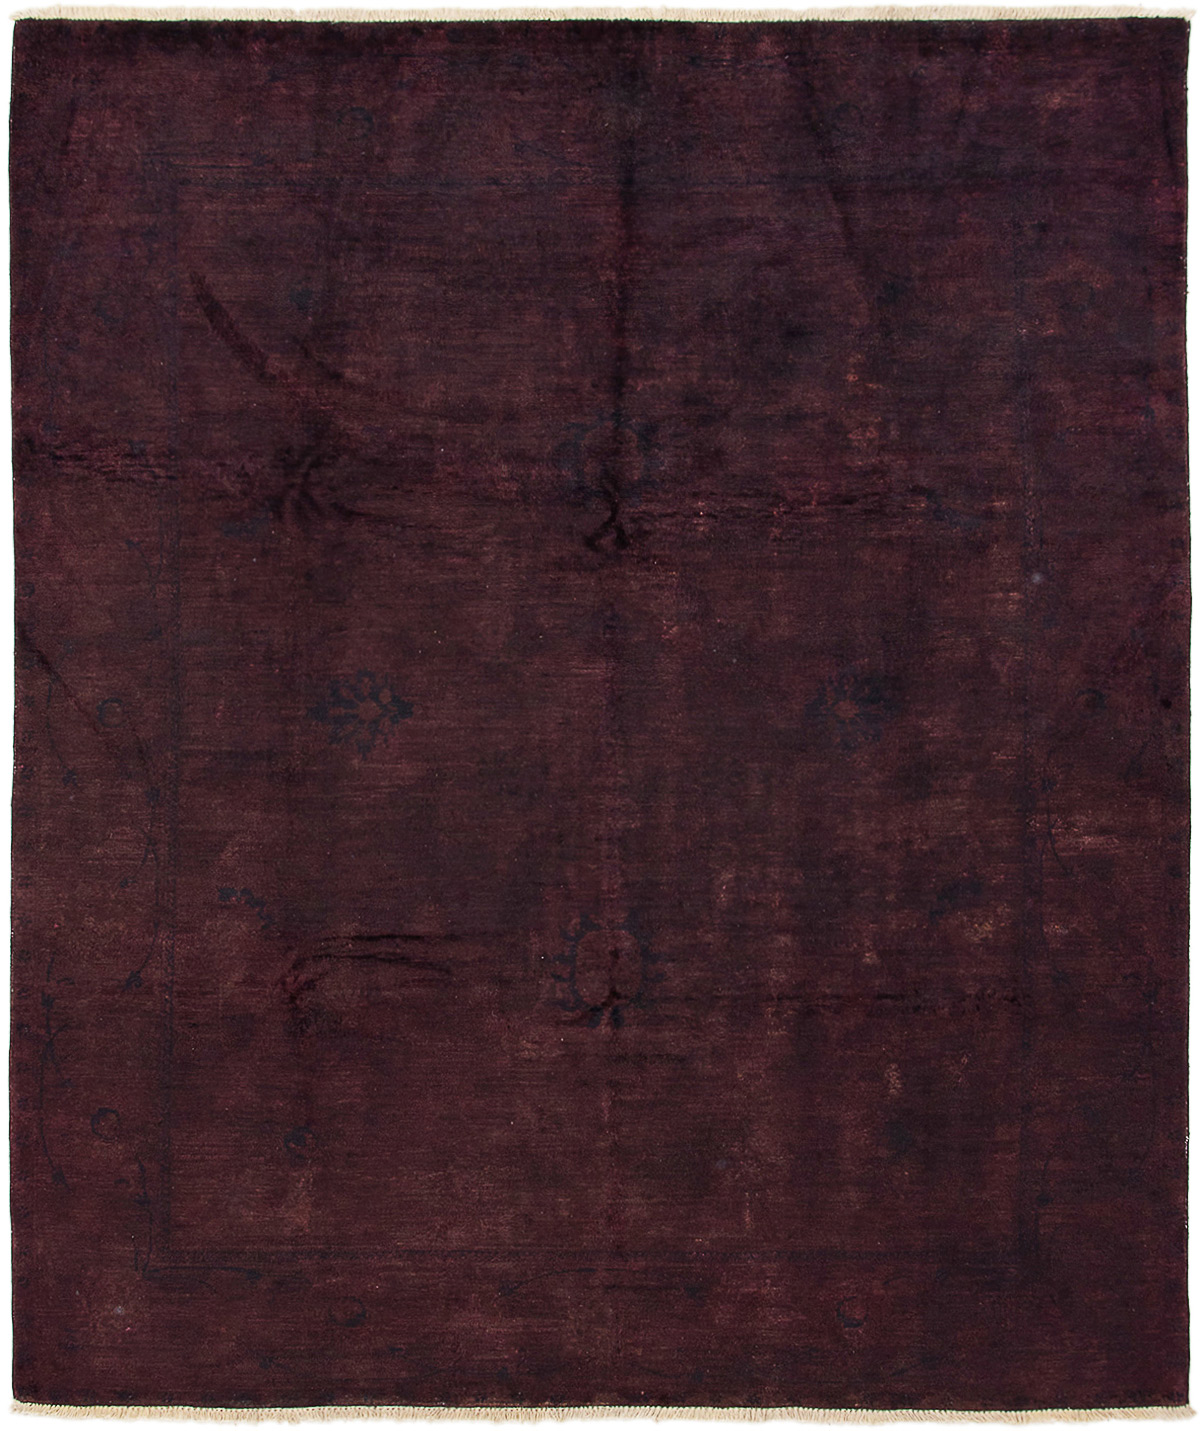 """Hand-knotted Color transition Dark Burgundy Wool Rug 8'2"""" x 9'7"""" Size: 8'2"""" x 9'7"""""""